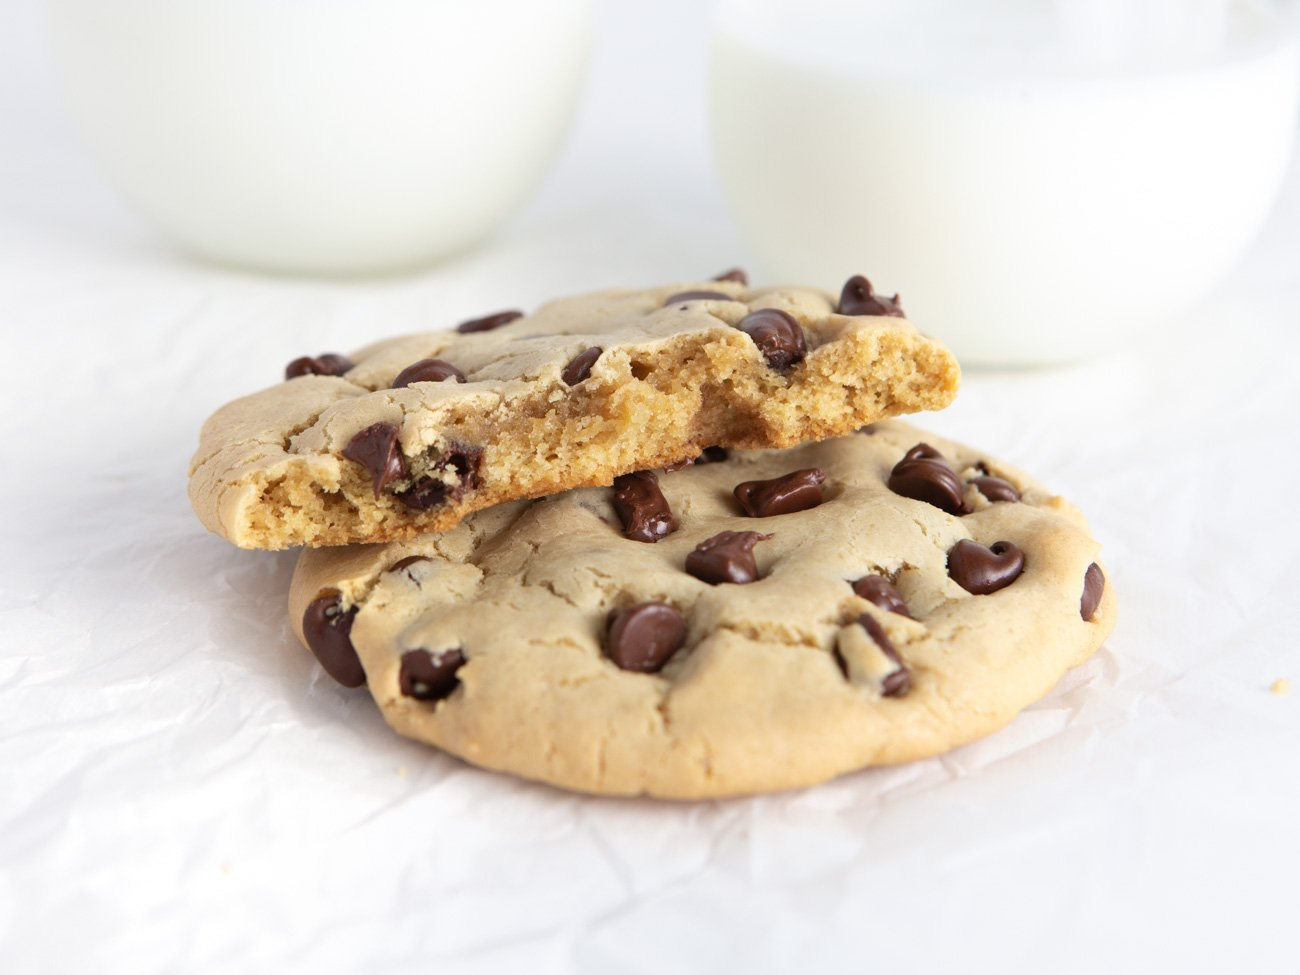 Inside soft texture of Chocolate Chip Cookies for Two